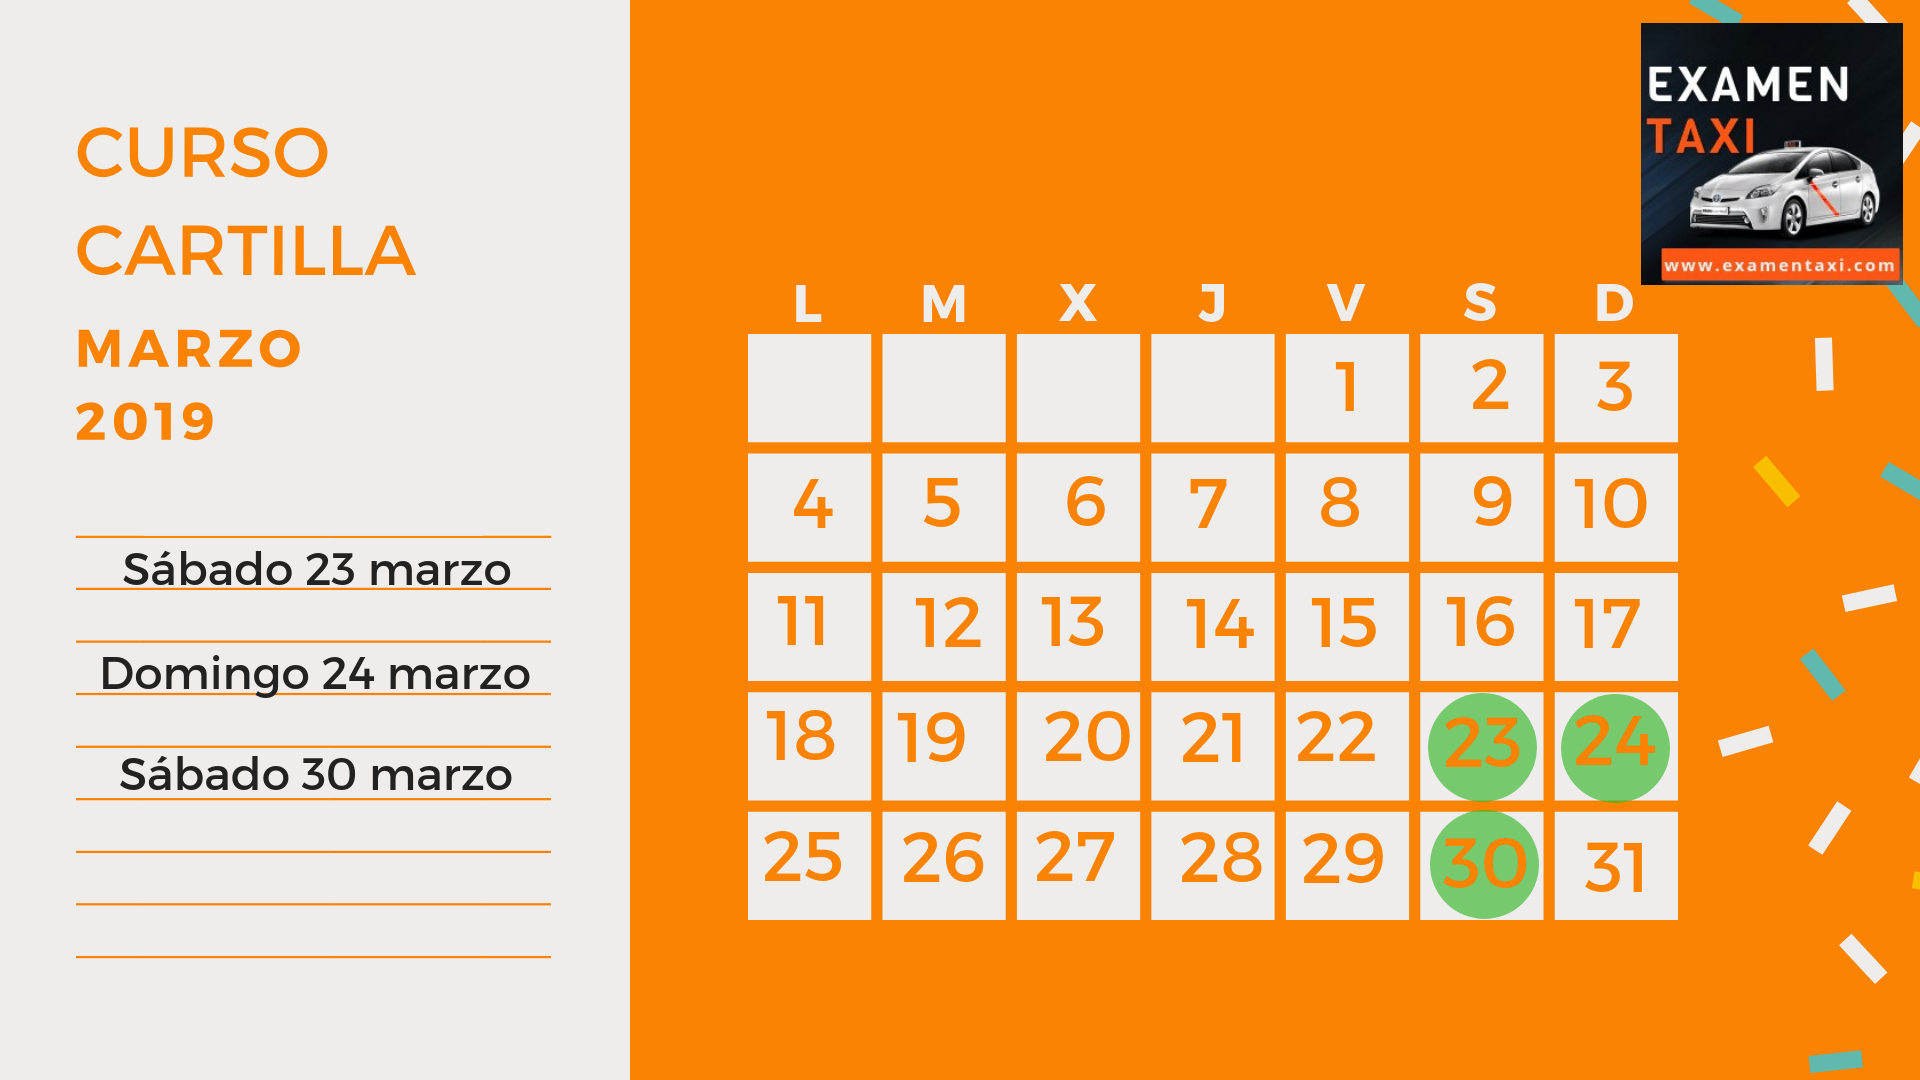 Calendario Curso Cartilla Marzo 2019